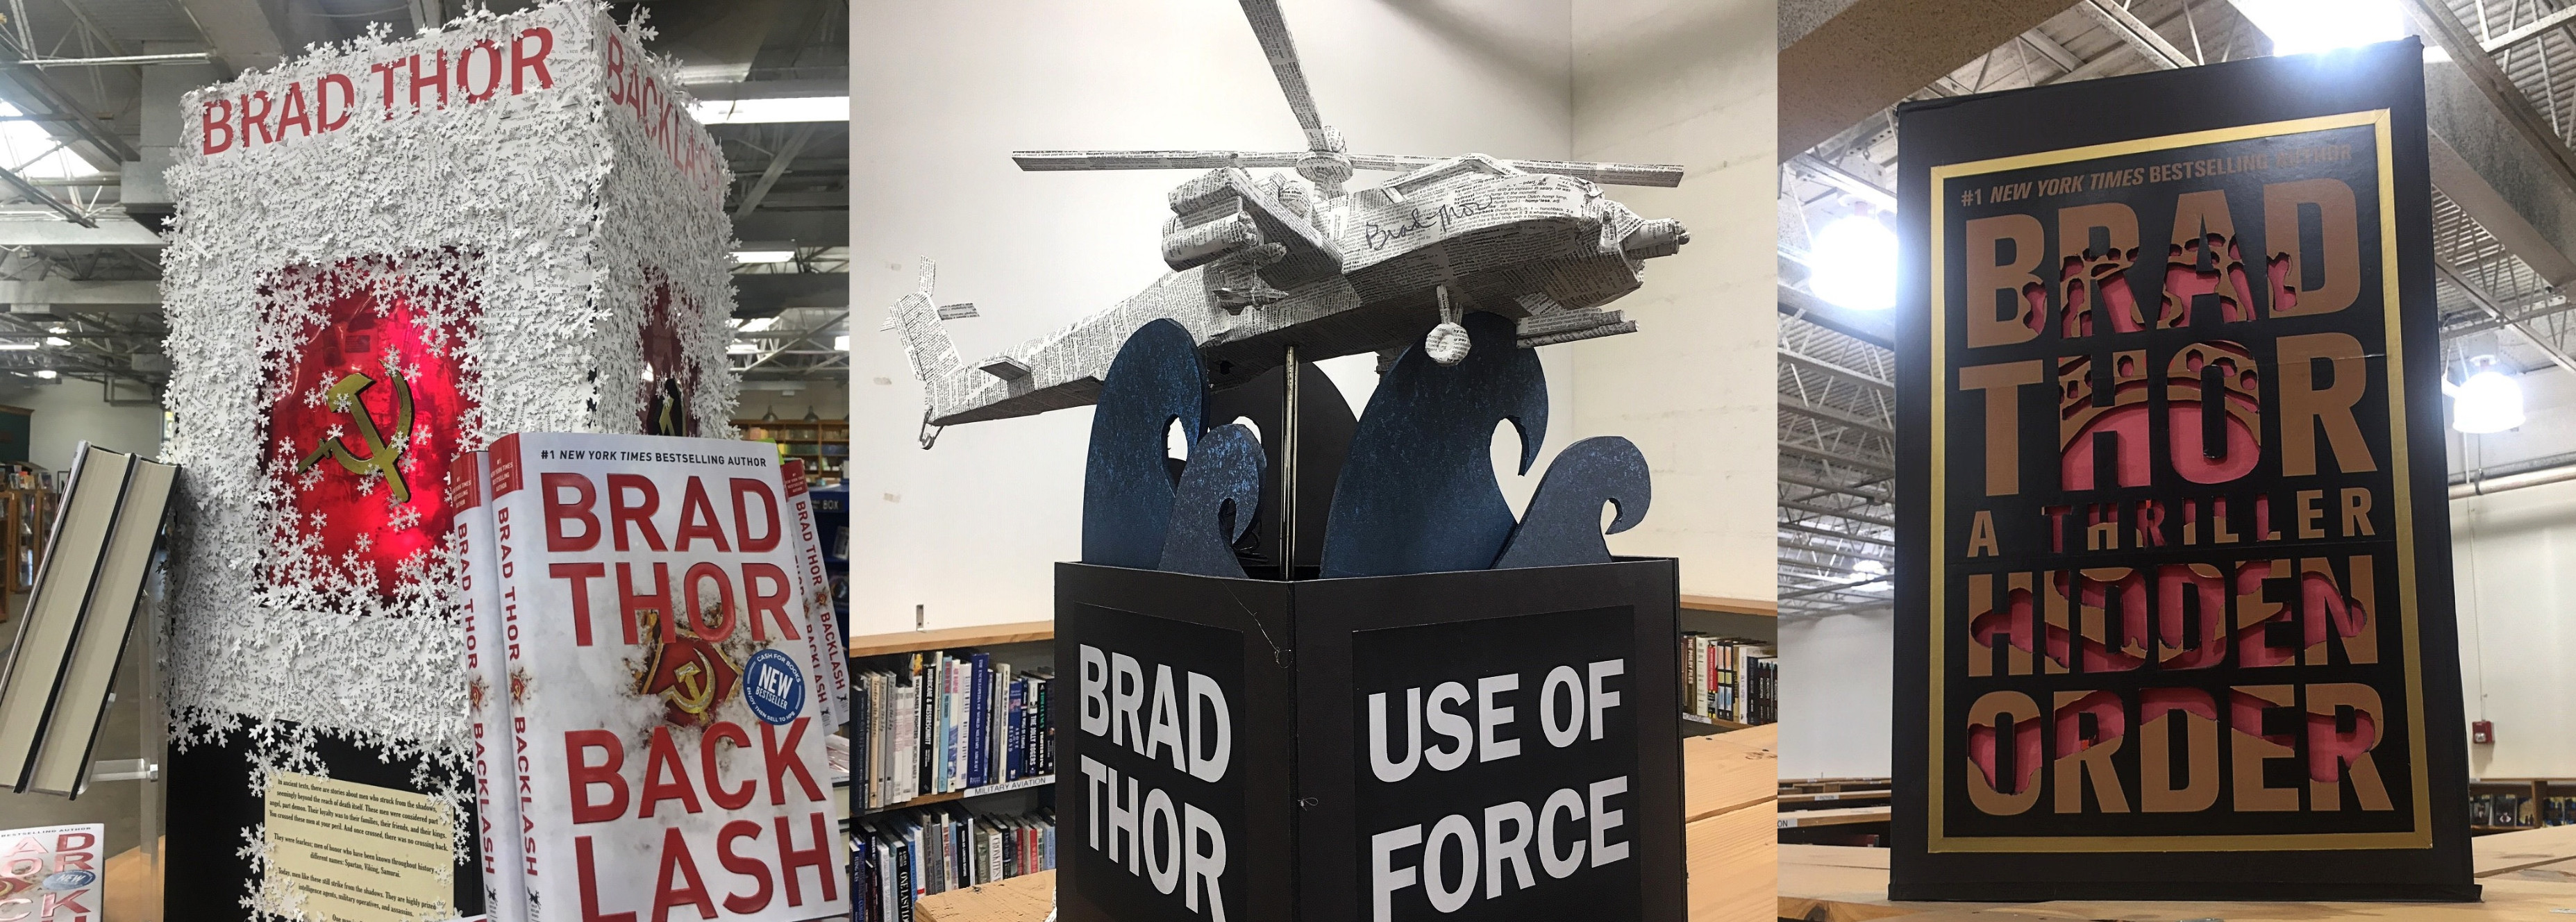 Baughman's paper sculptures for Brad Thor's thrillers. Photo: Hady Mawajdeh